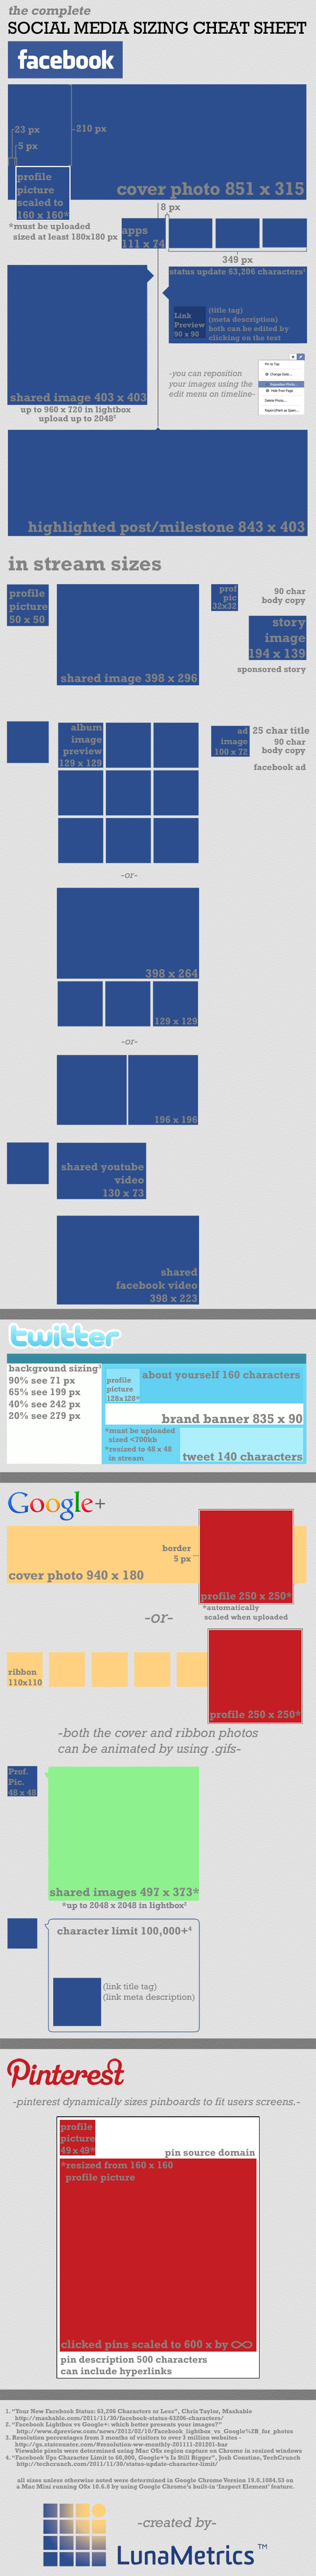 Facebook, Twitter, Google+, Pinterest - Complete Social Media Sizing Cheat Sheet